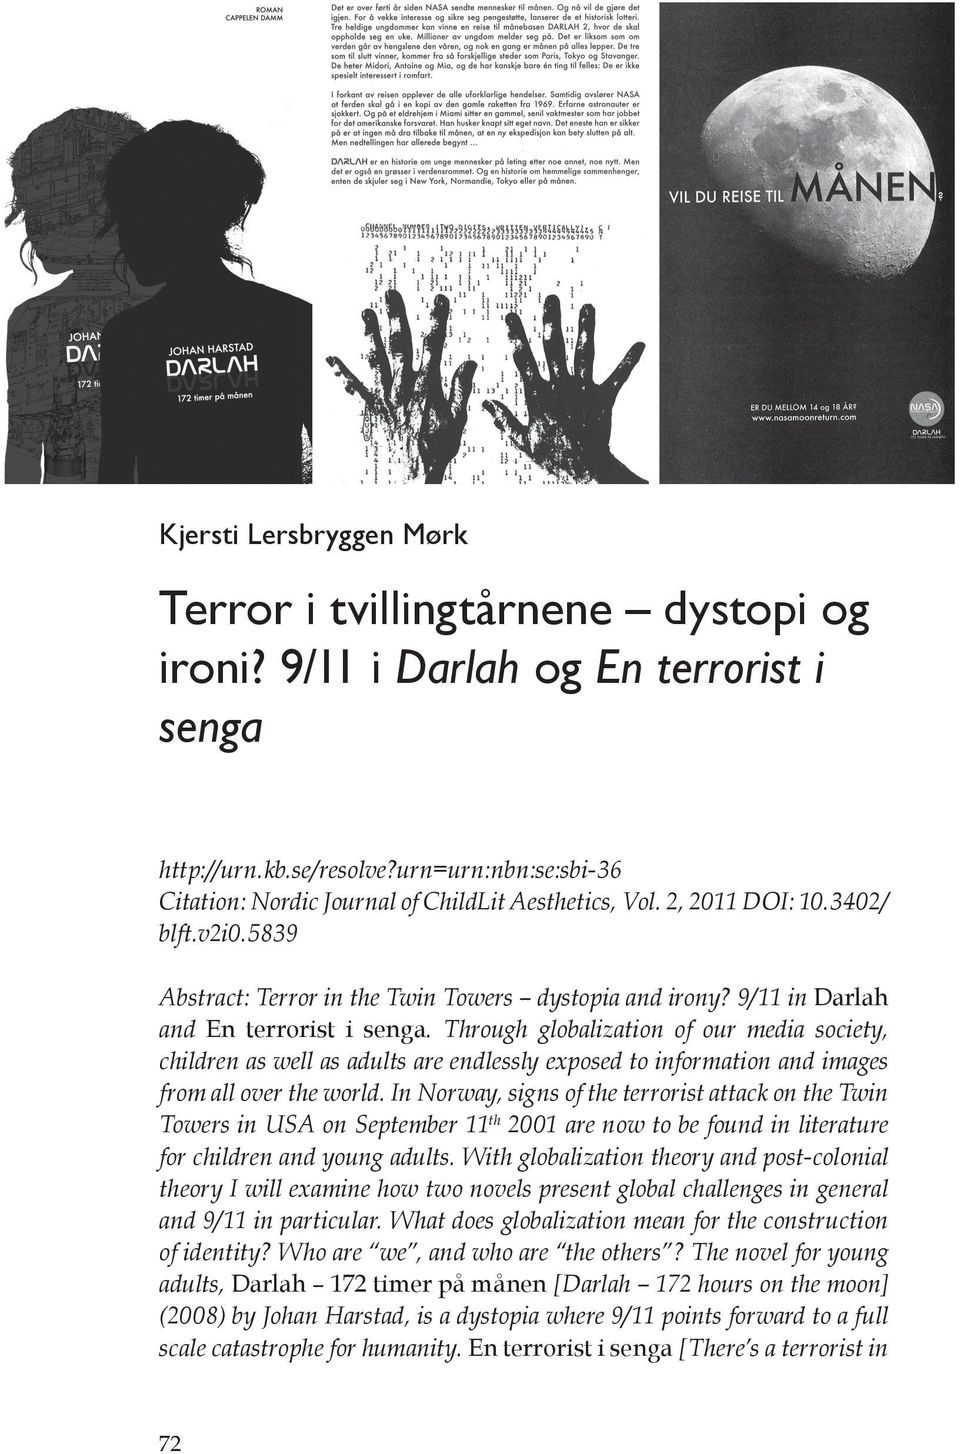 9/11 in Darlah and En terrorist i senga. Through globalization of our media society, children as well as adults are endlessly exposed to information and images from all over the world.